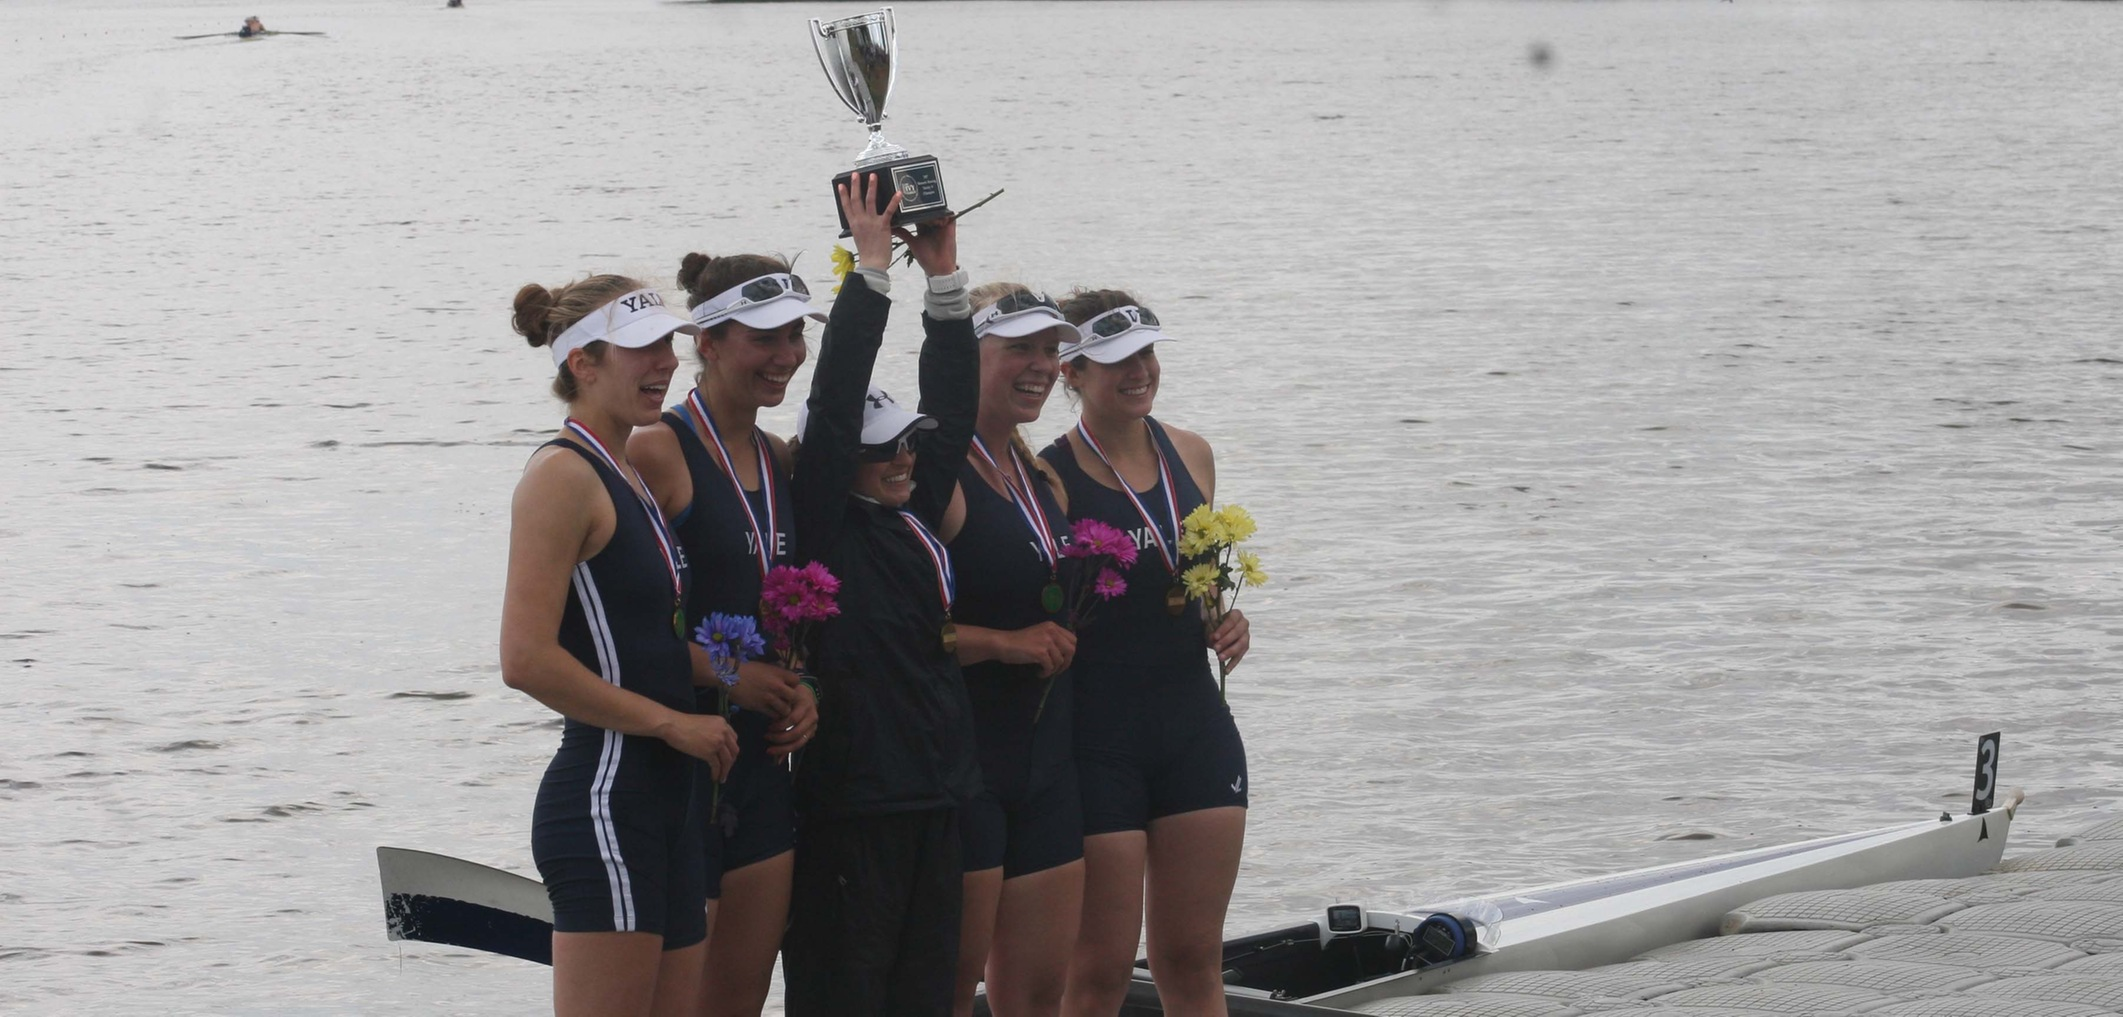 The varsity four with the Ivy League Trophy (Tim Bennett photo)